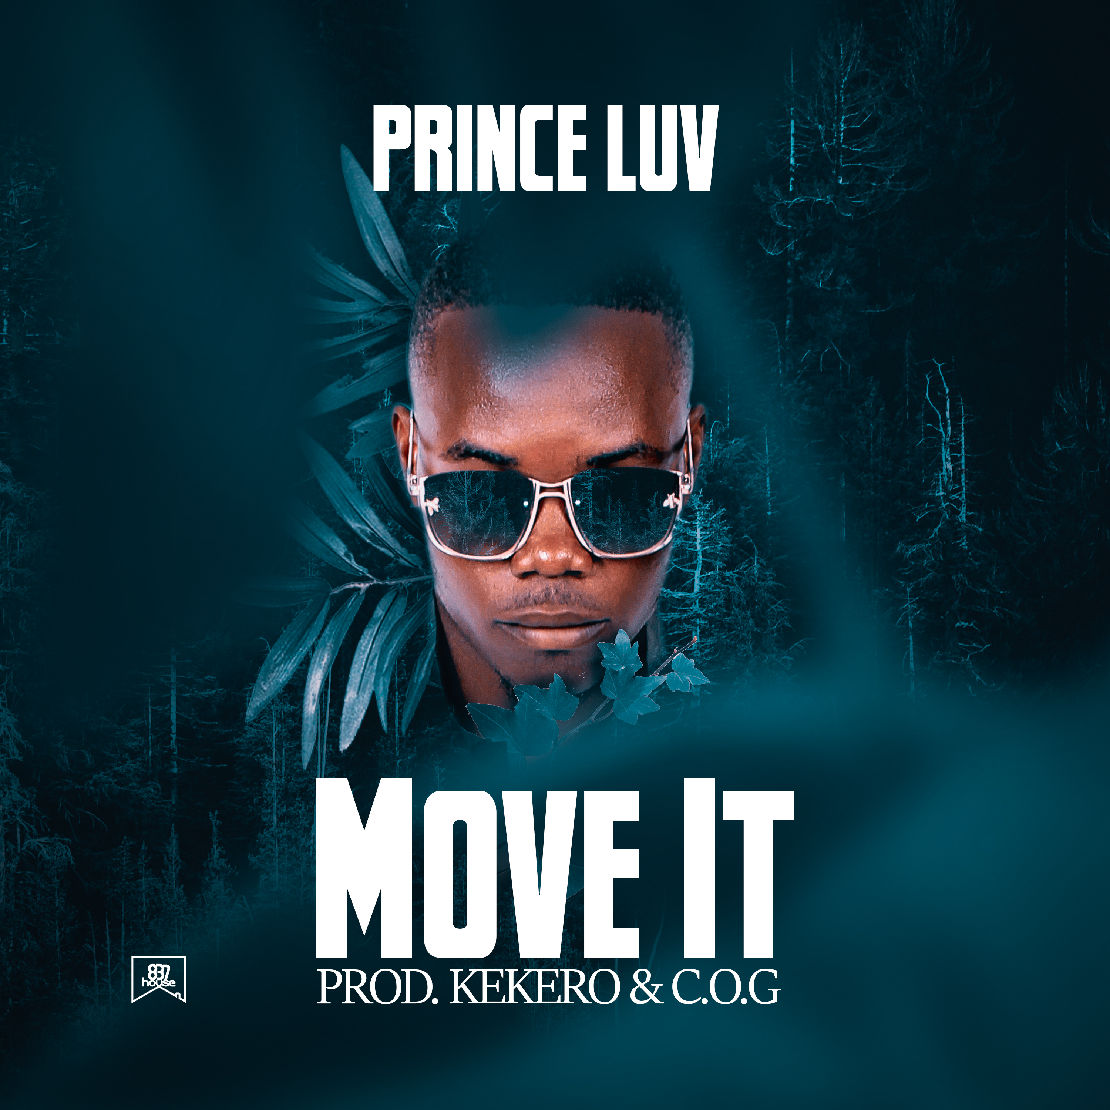 Prince Luv - Move It